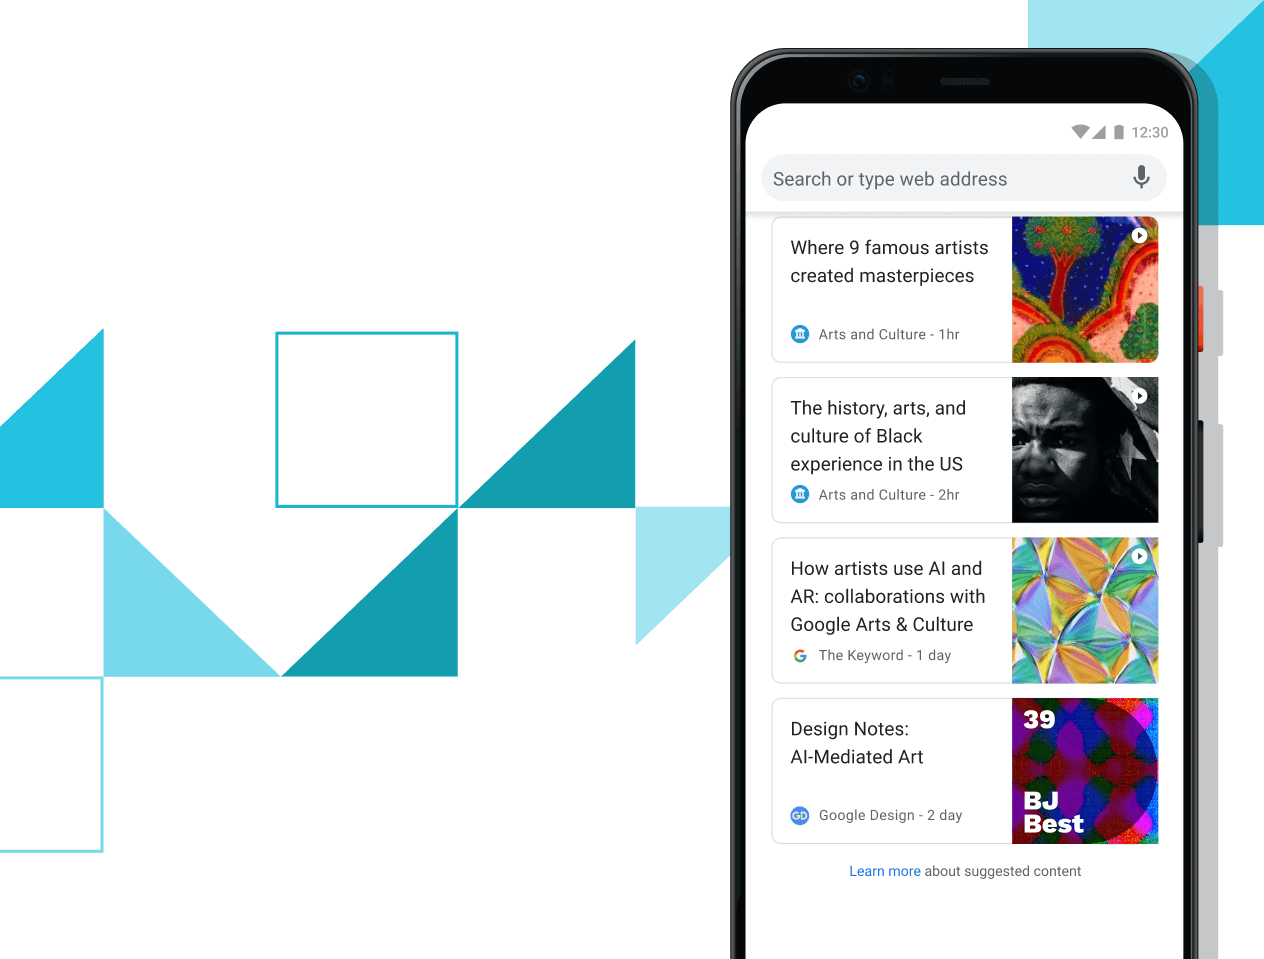 Pixel 4 XL phone with screen displaying curated article links.